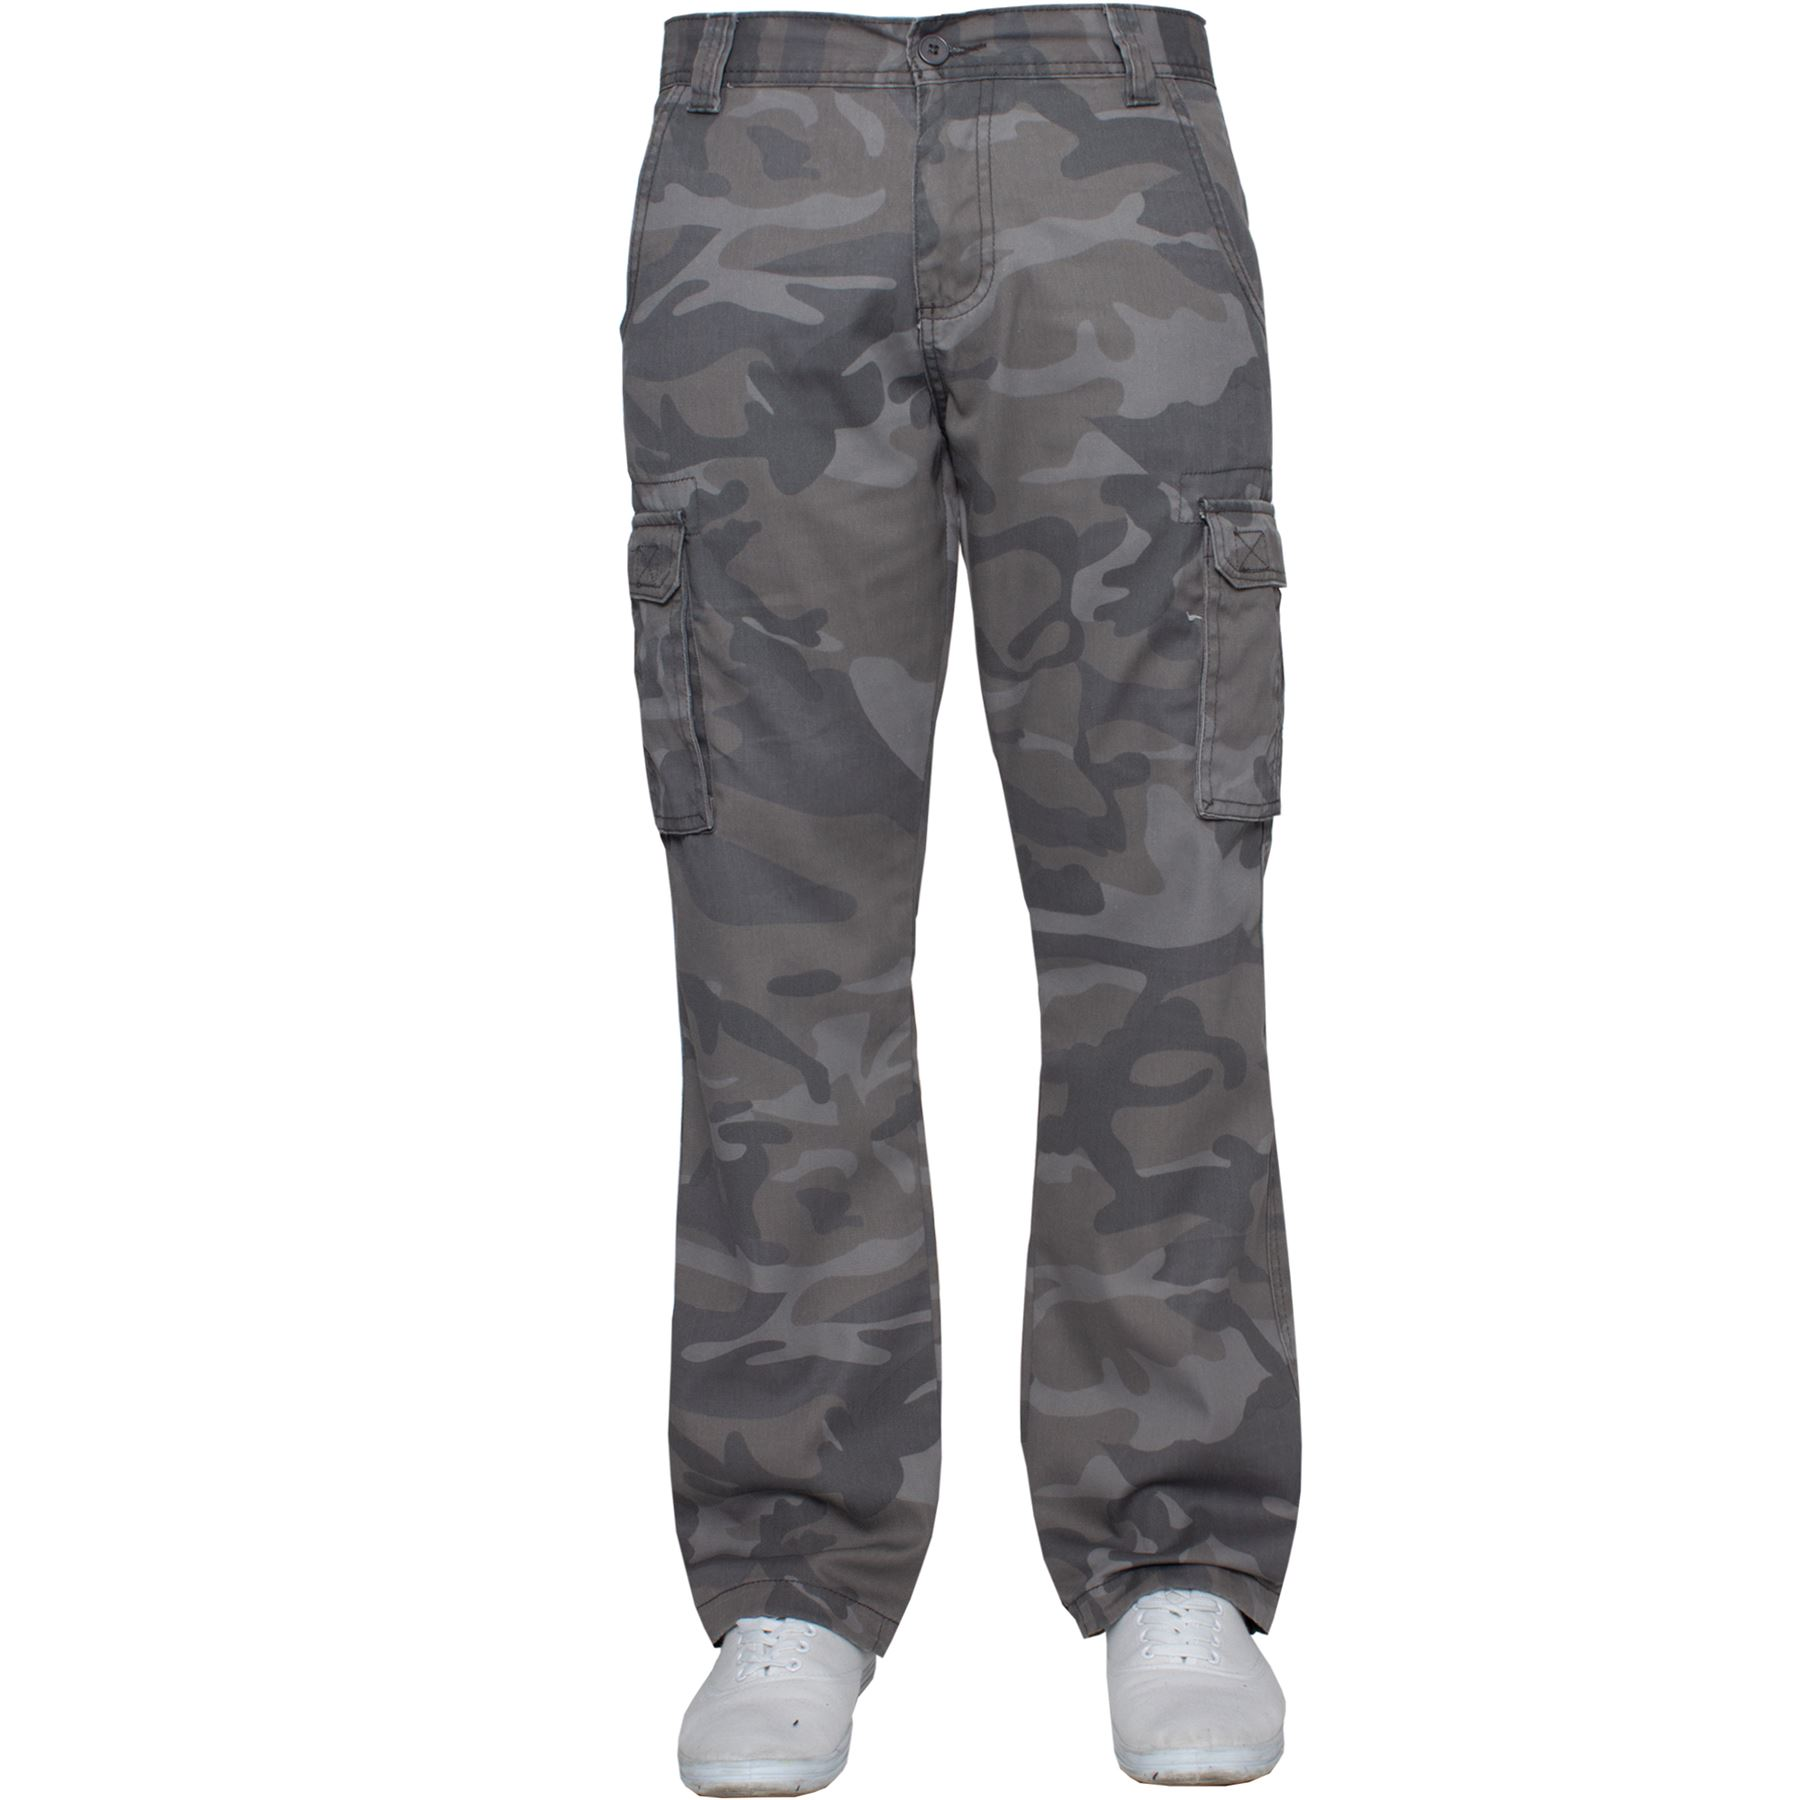 Kruze-Mens-Military-Combat-Trousers-Camouflage-Cargo-Camo-Army-Casual-Work-Pants miniatura 12